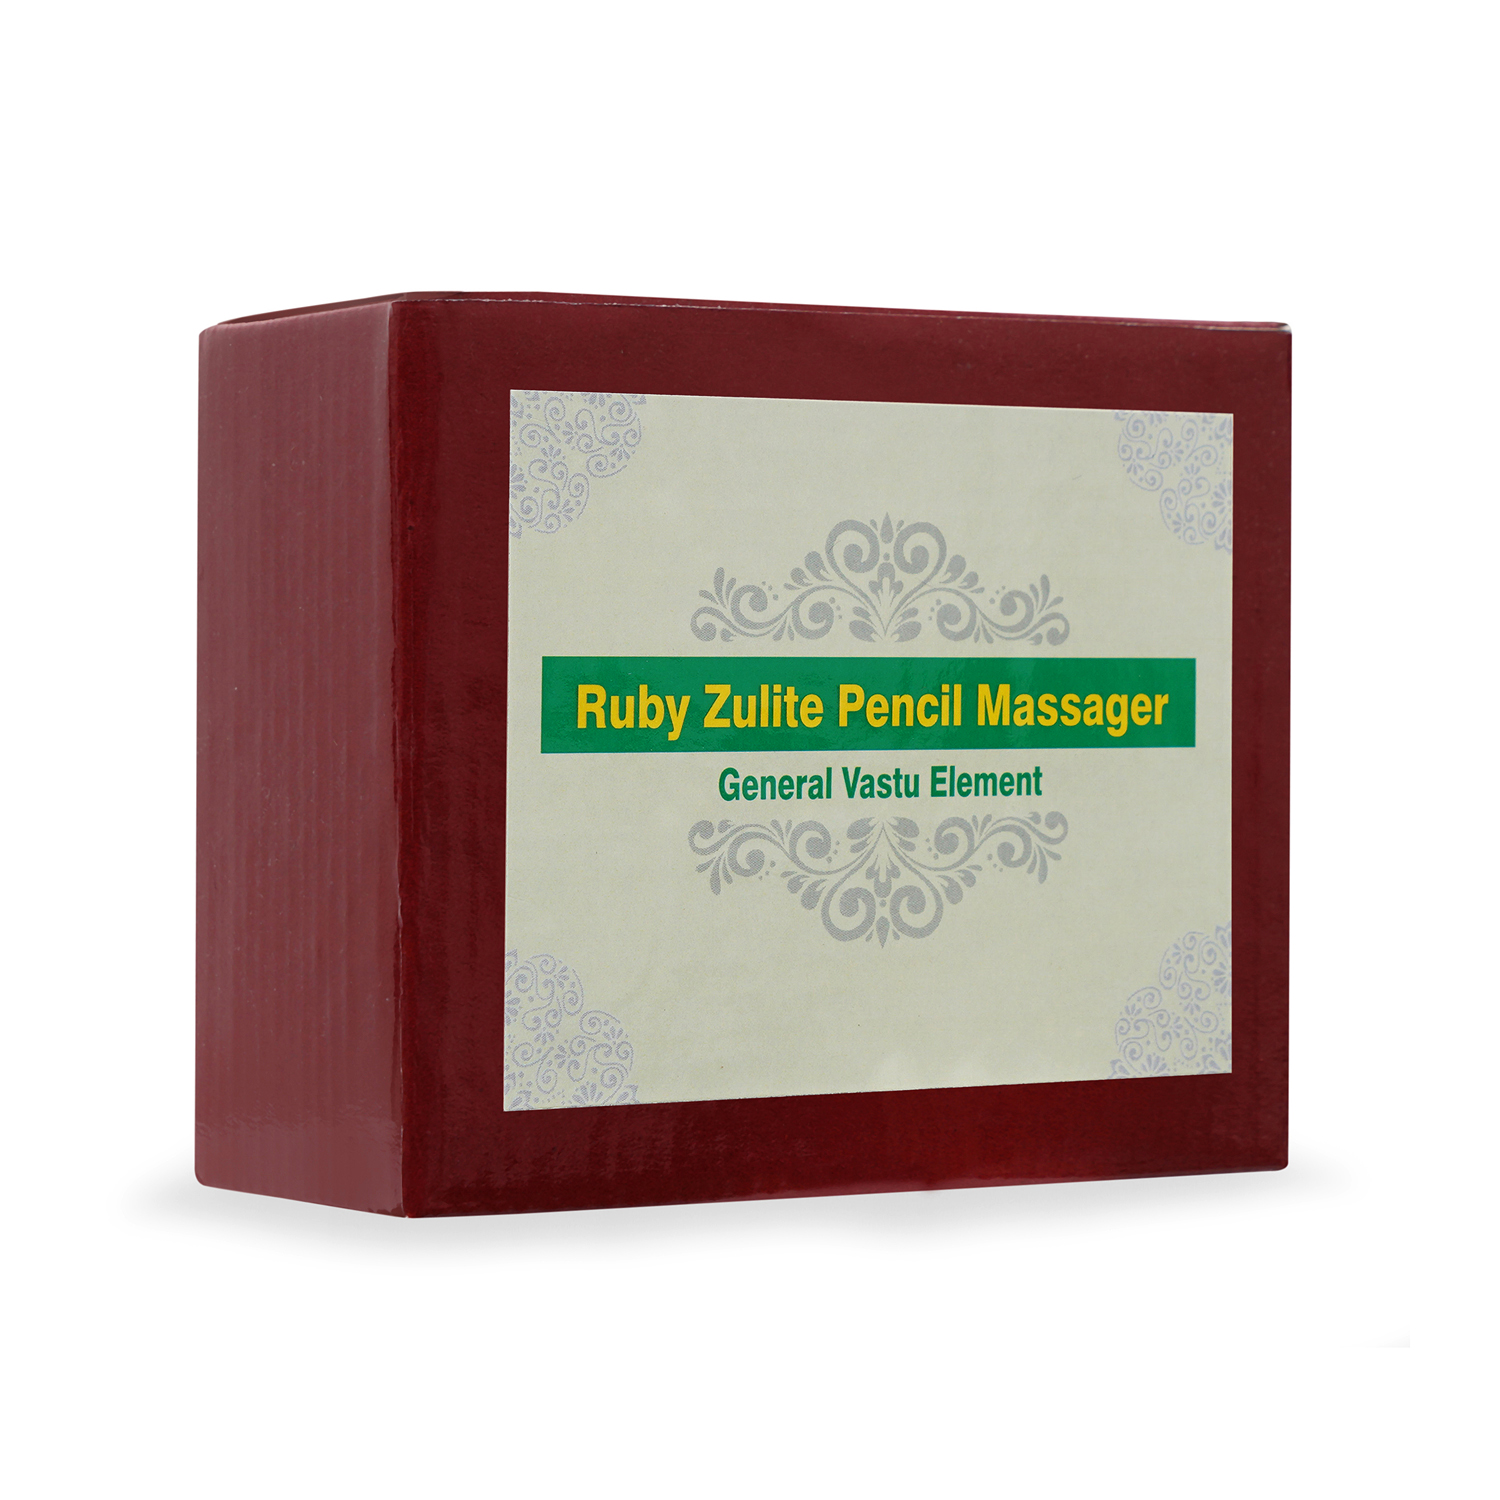 Rubyzulite Pencil Massager